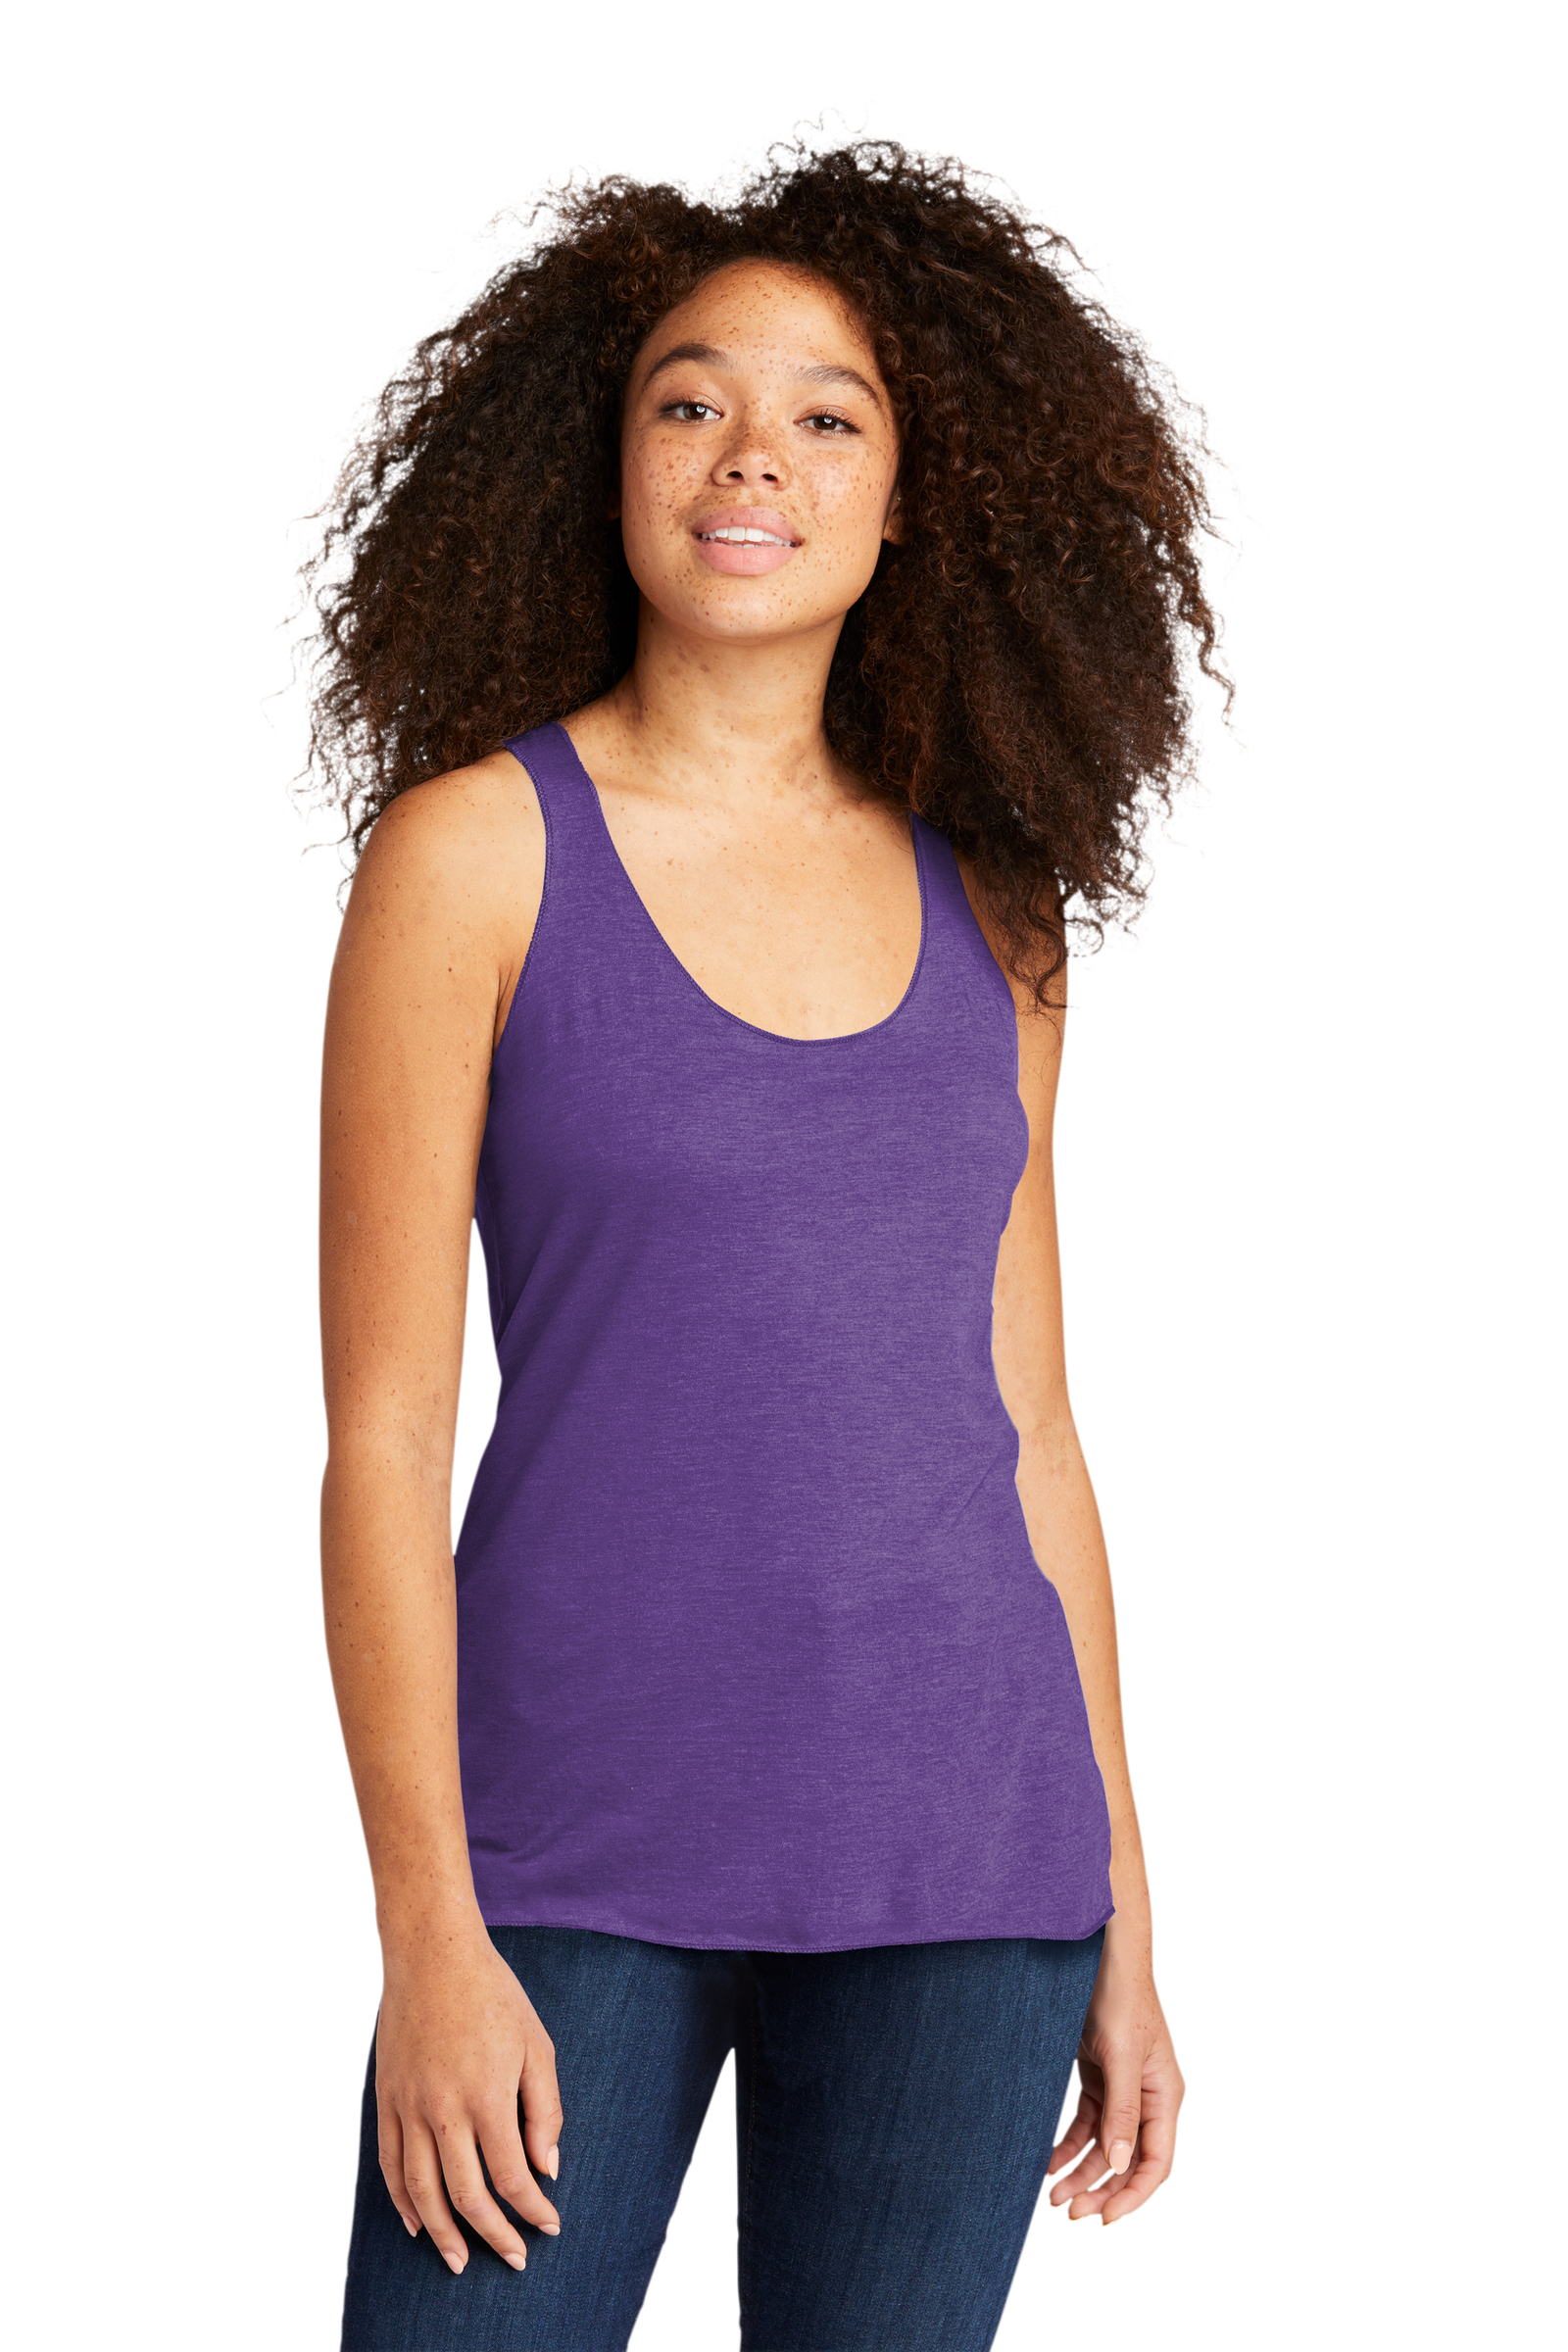 Next Level Embroidered Women's Tri-Blend Racerback Tank